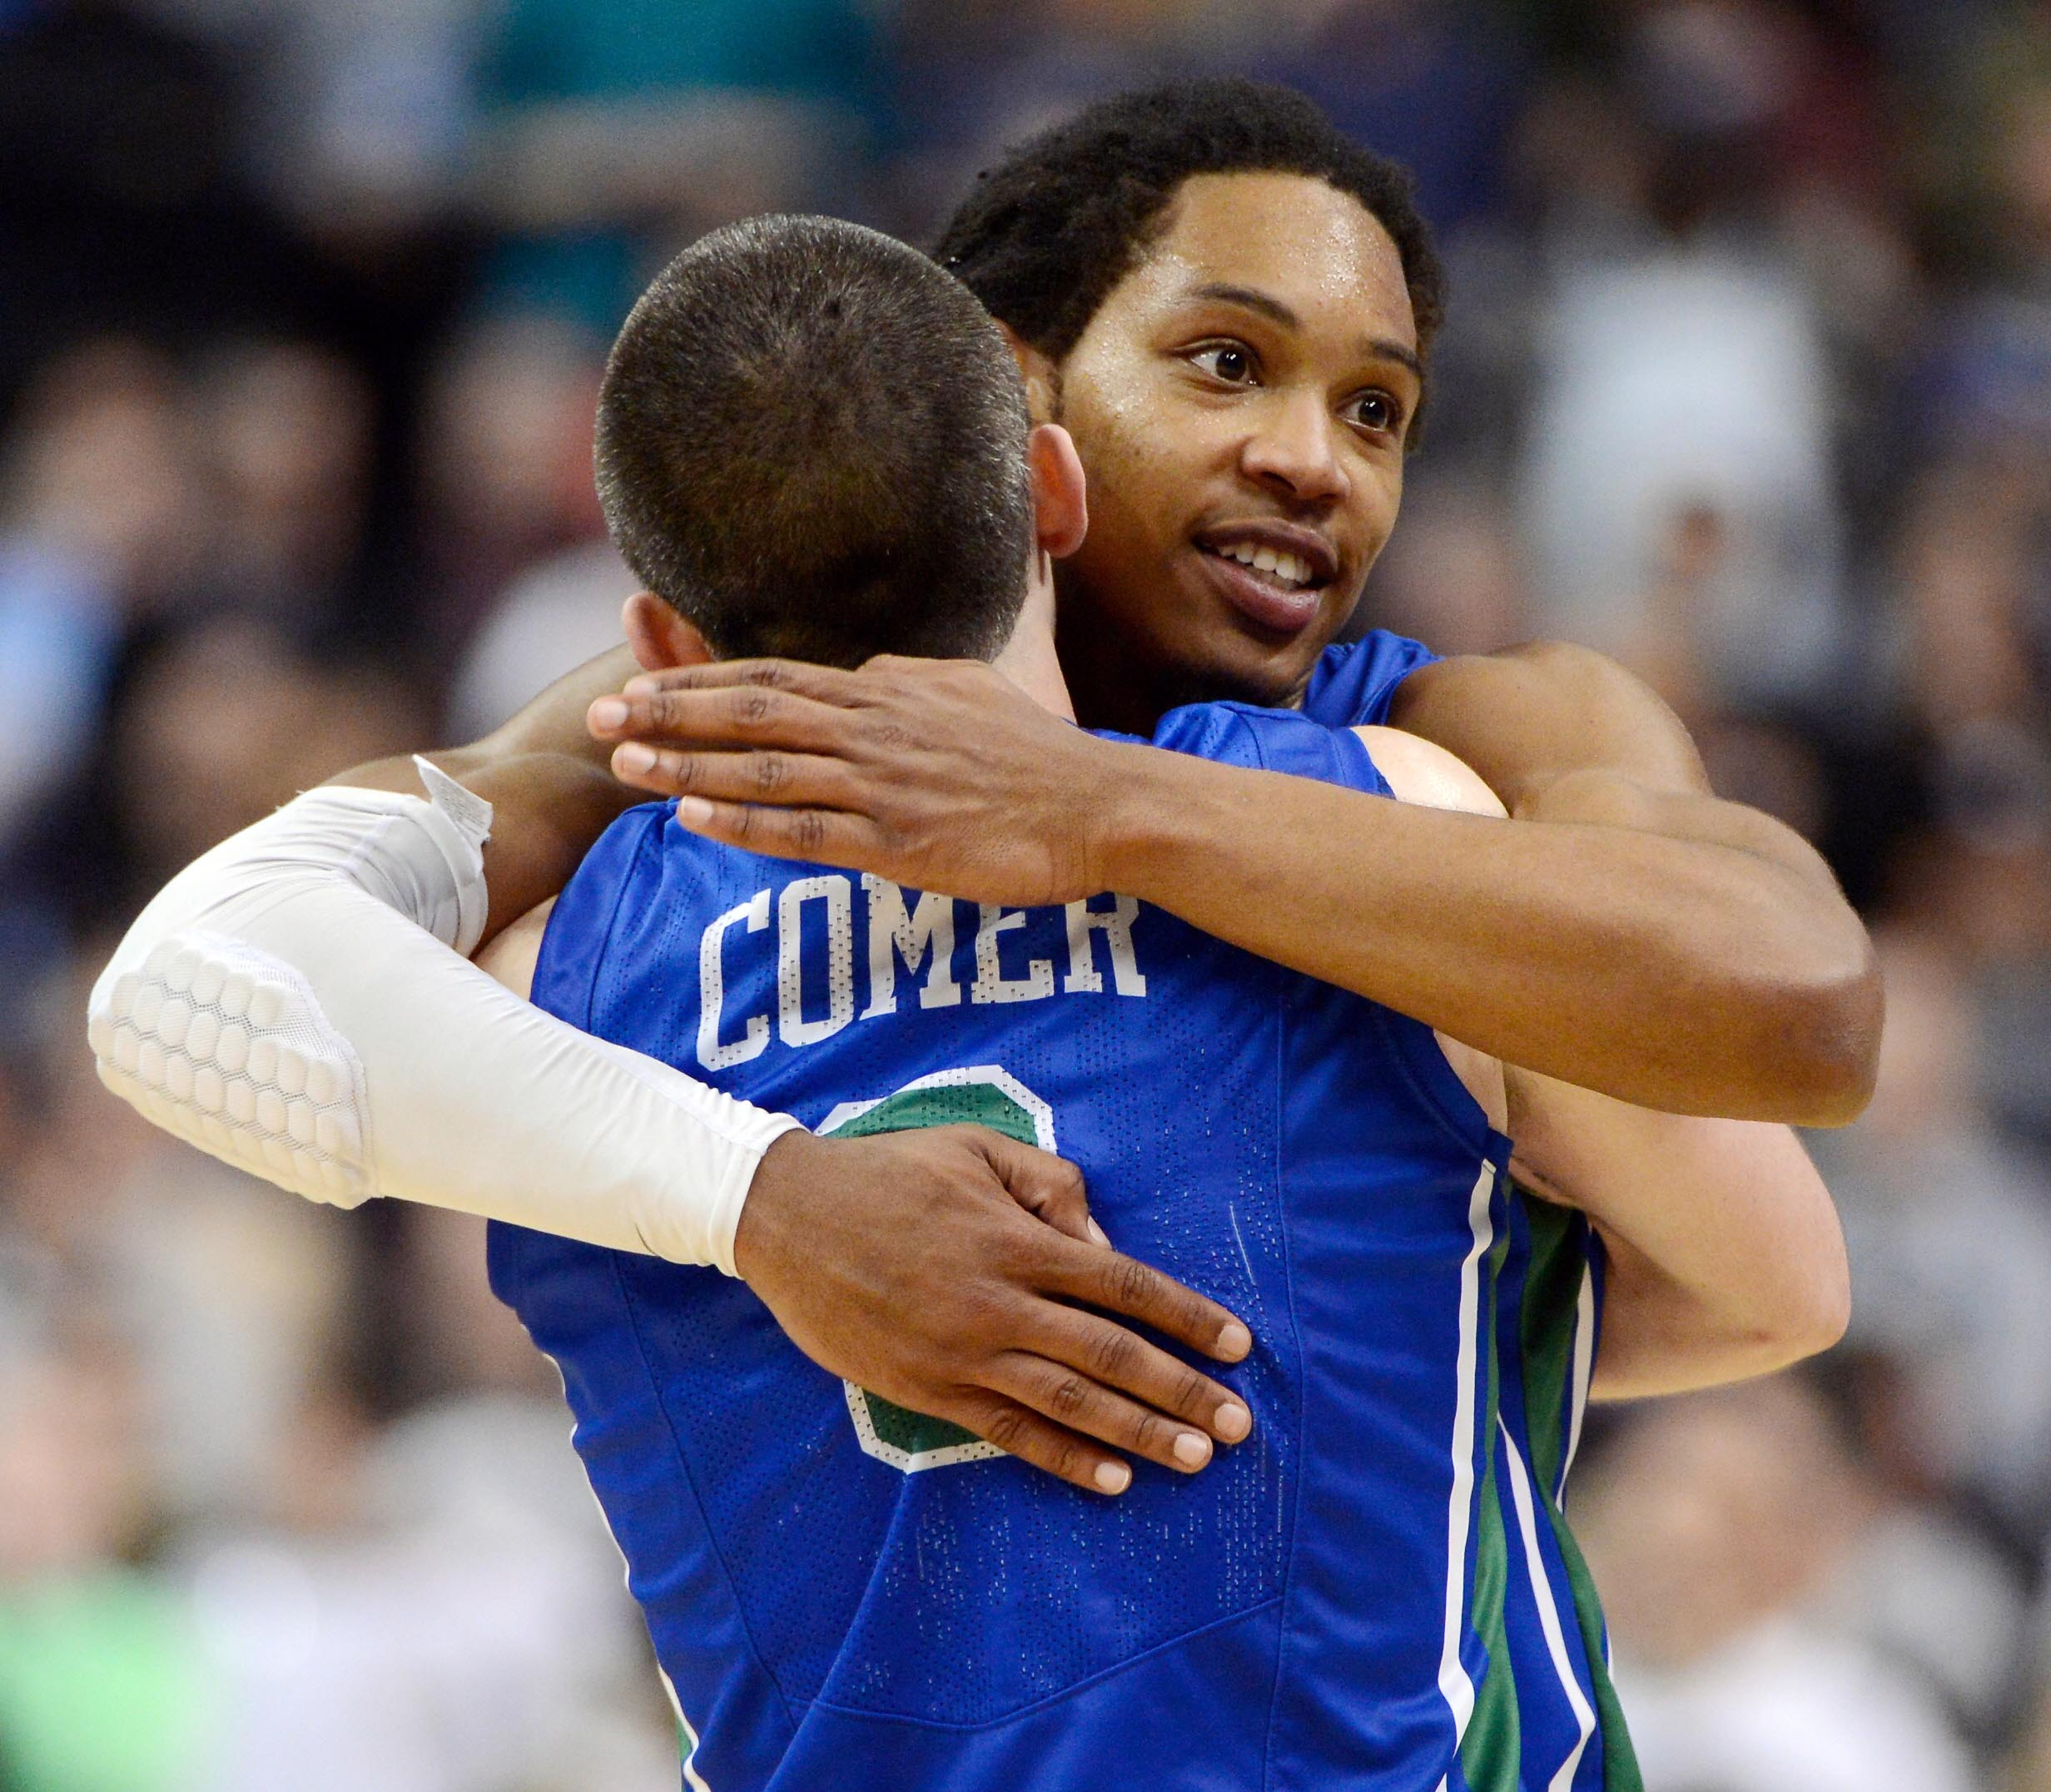 Brett Comer gets a hug from Sherwood Brown to celebrate Florida Gulf Coast's stunner over Georgetown. (USA TODAY Sports)